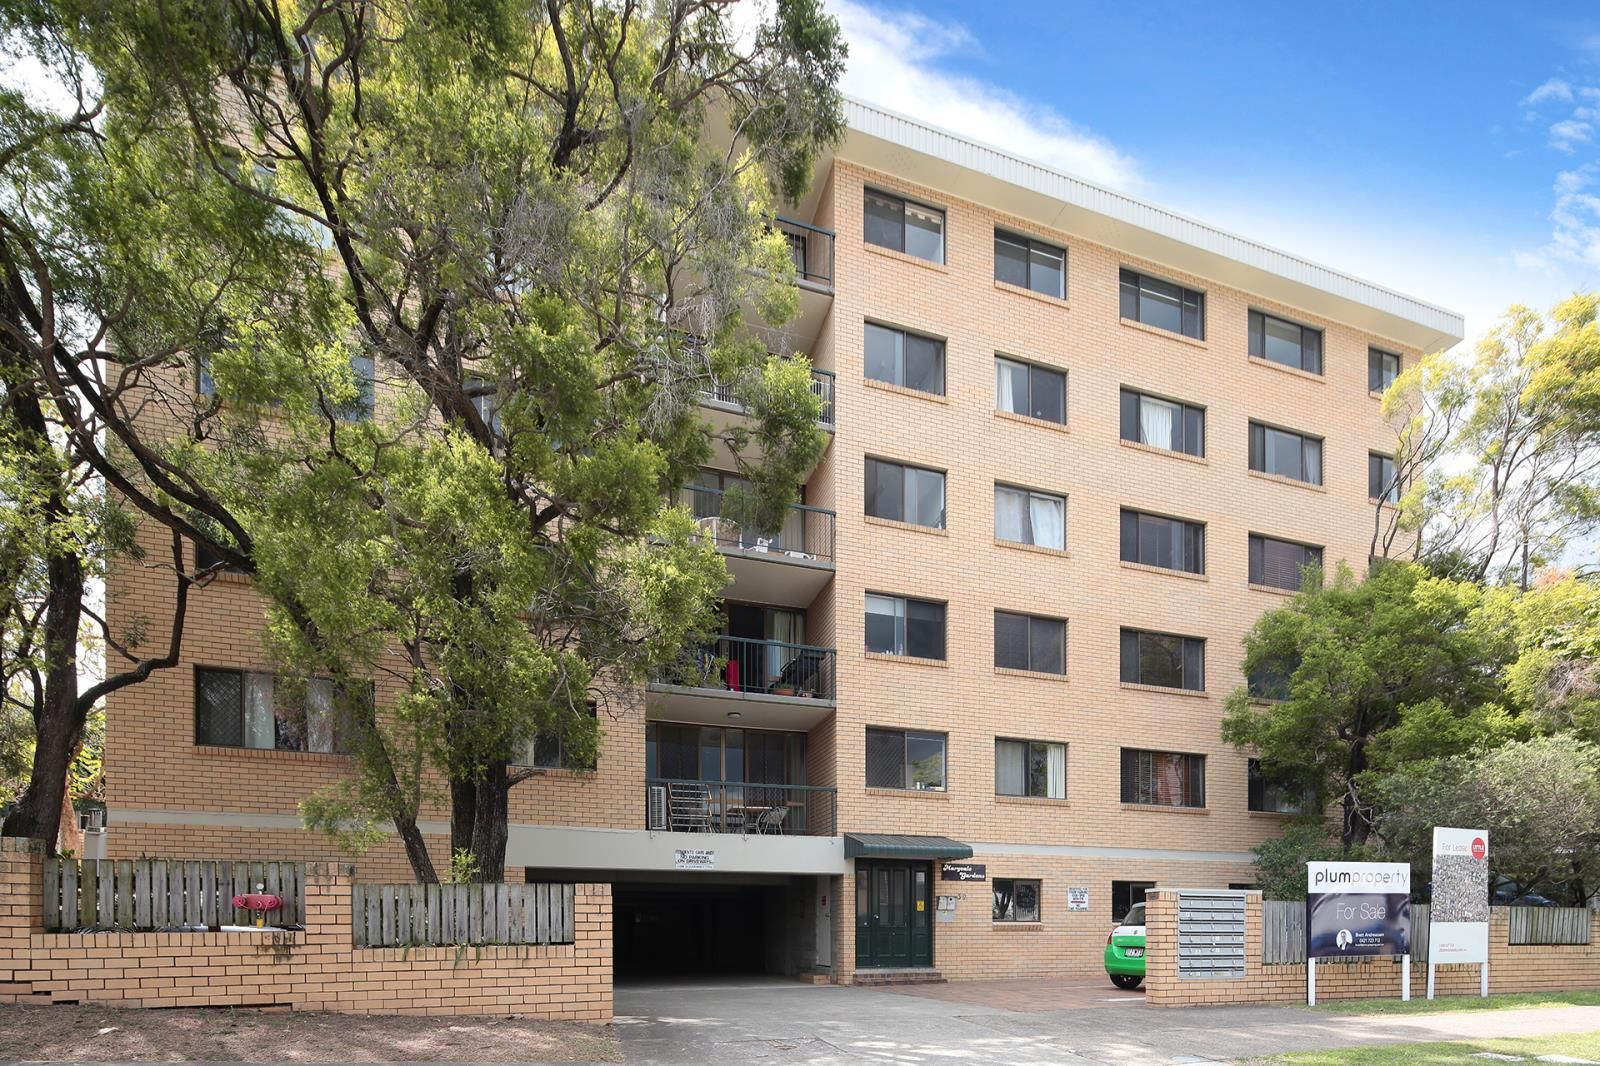 17/39 Maryvale Street, Toowong QLD 4066, Image 0